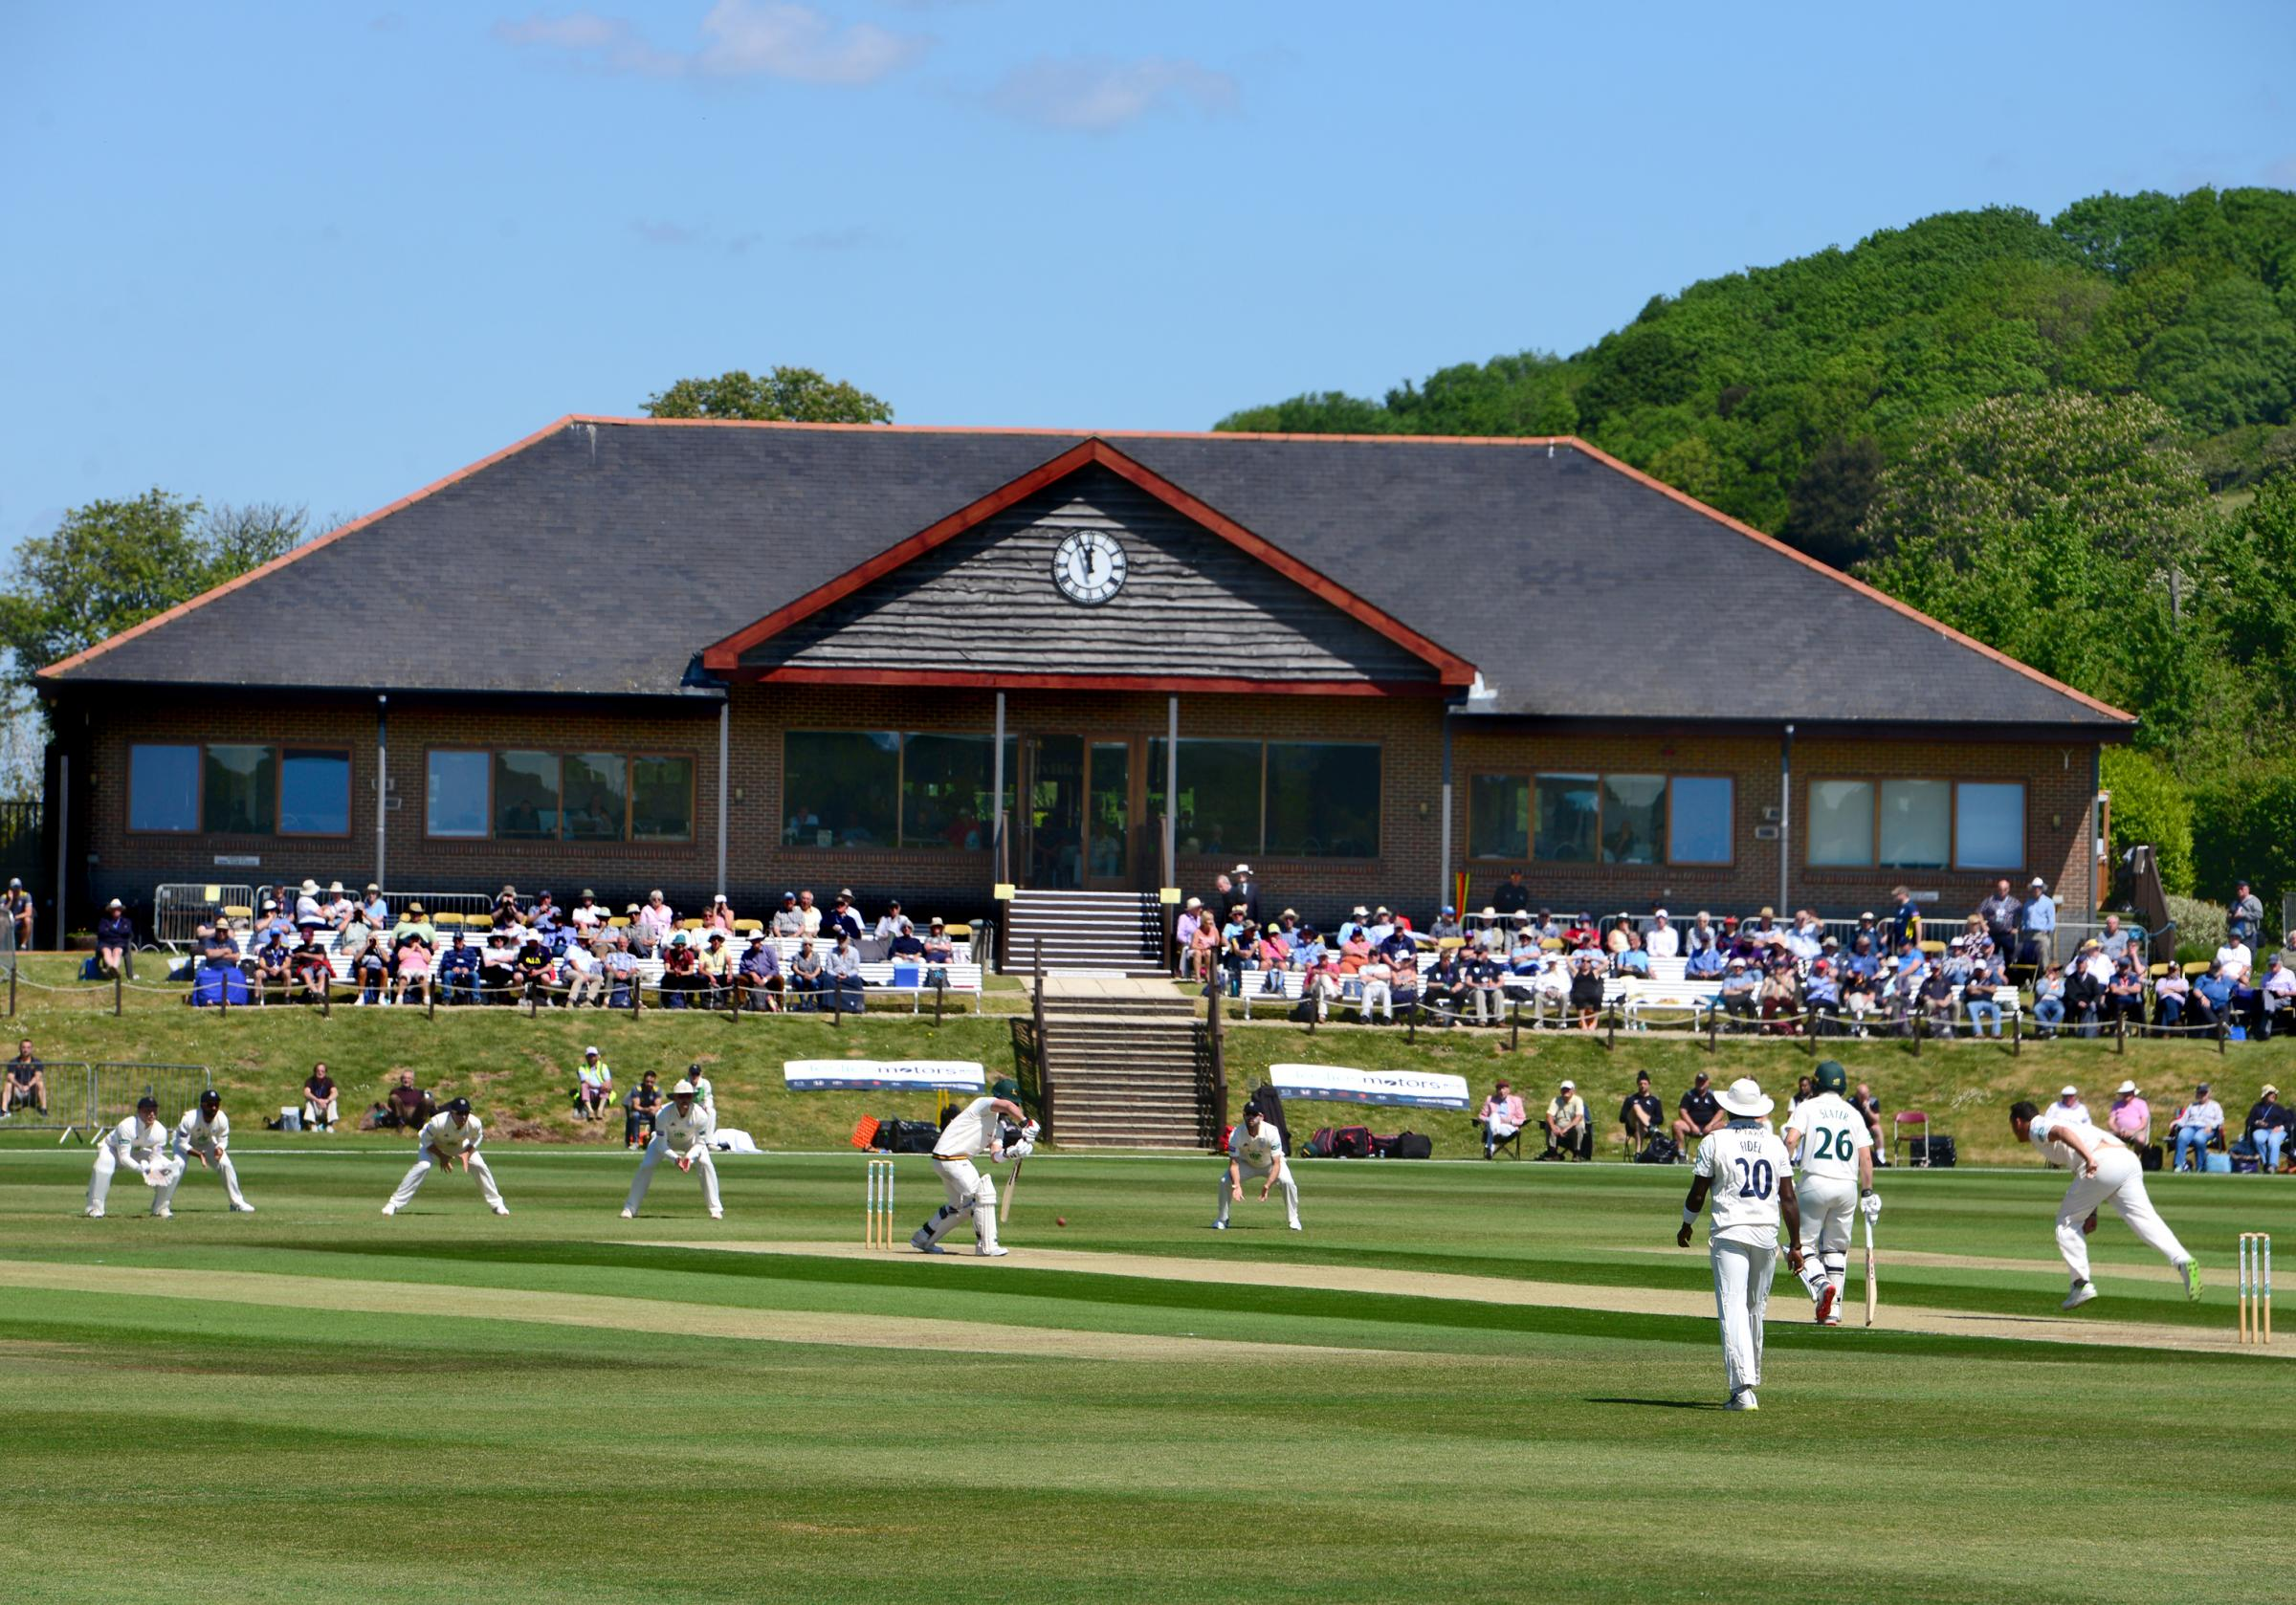 County Championship spectacle 'exceeding all expectations' says leading Newclose trustee